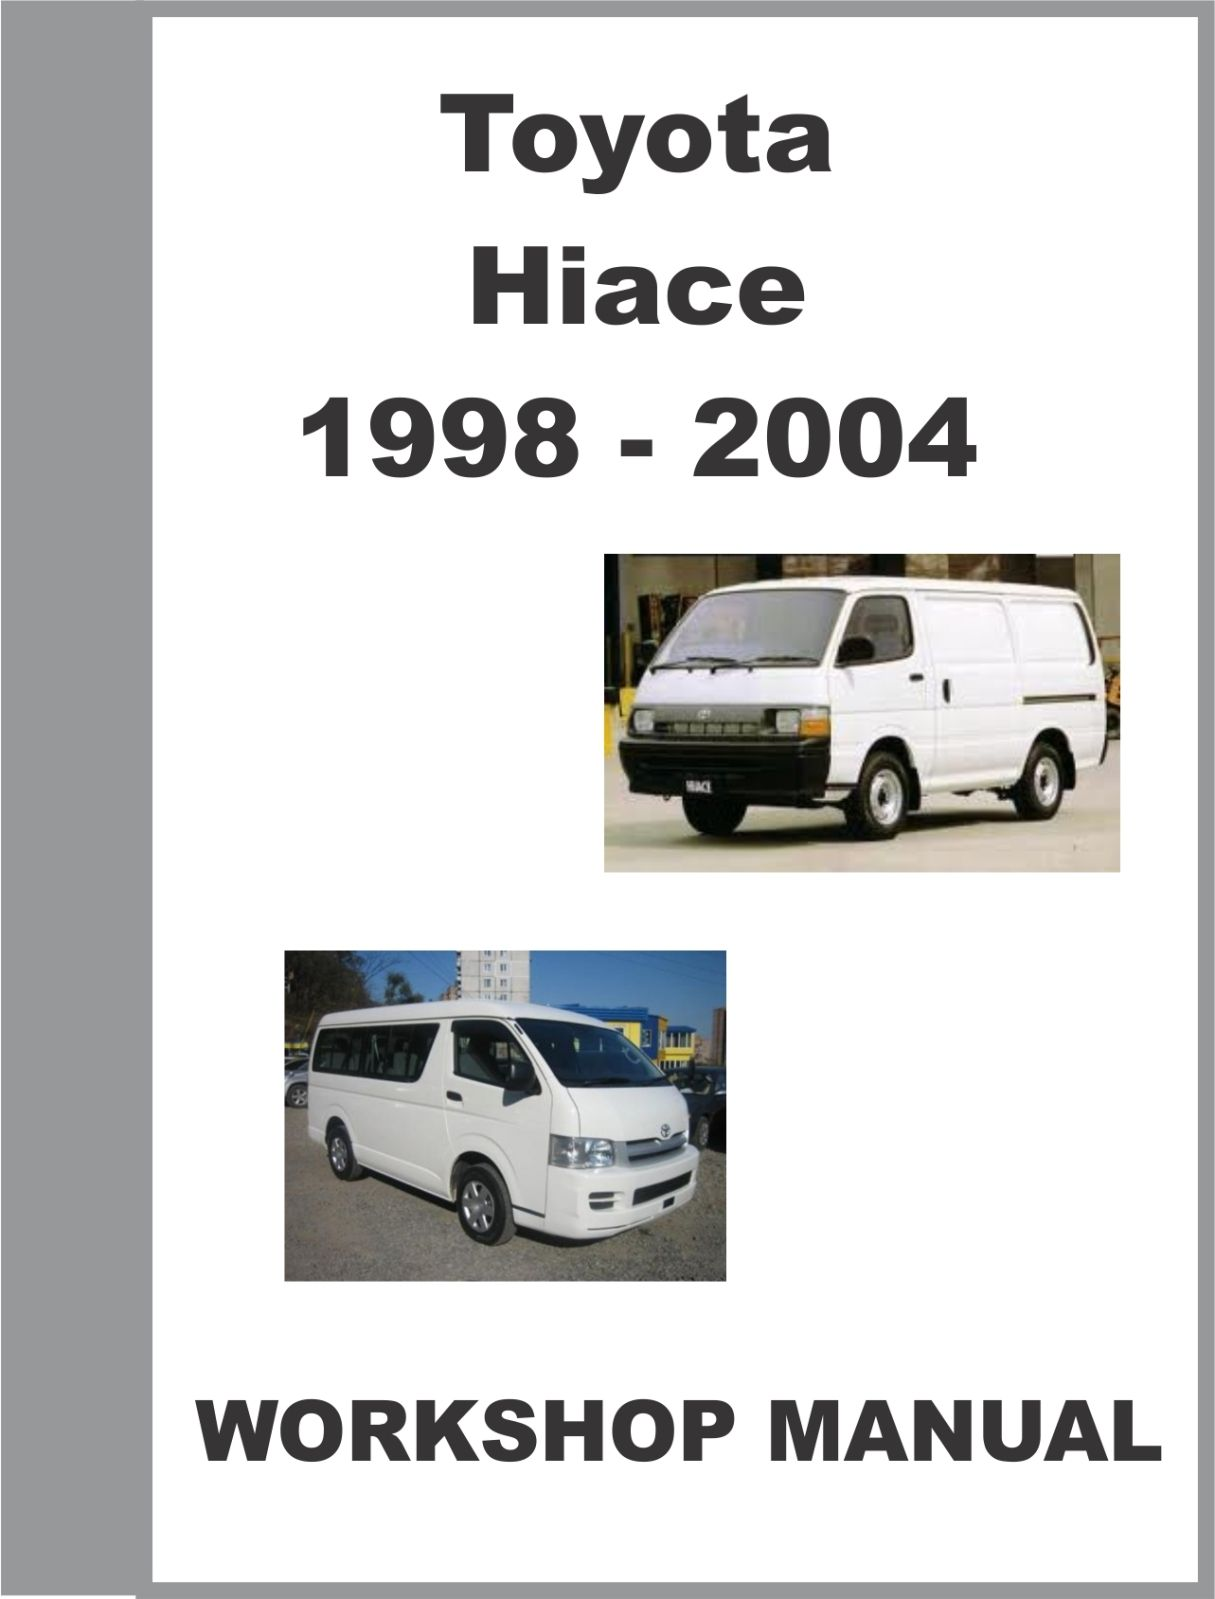 1999 toyota hiace workshop manual 1 toyota hiace pinterest rh pinterest com toyota hiace workshop manual pdf toyota hiace repair manual